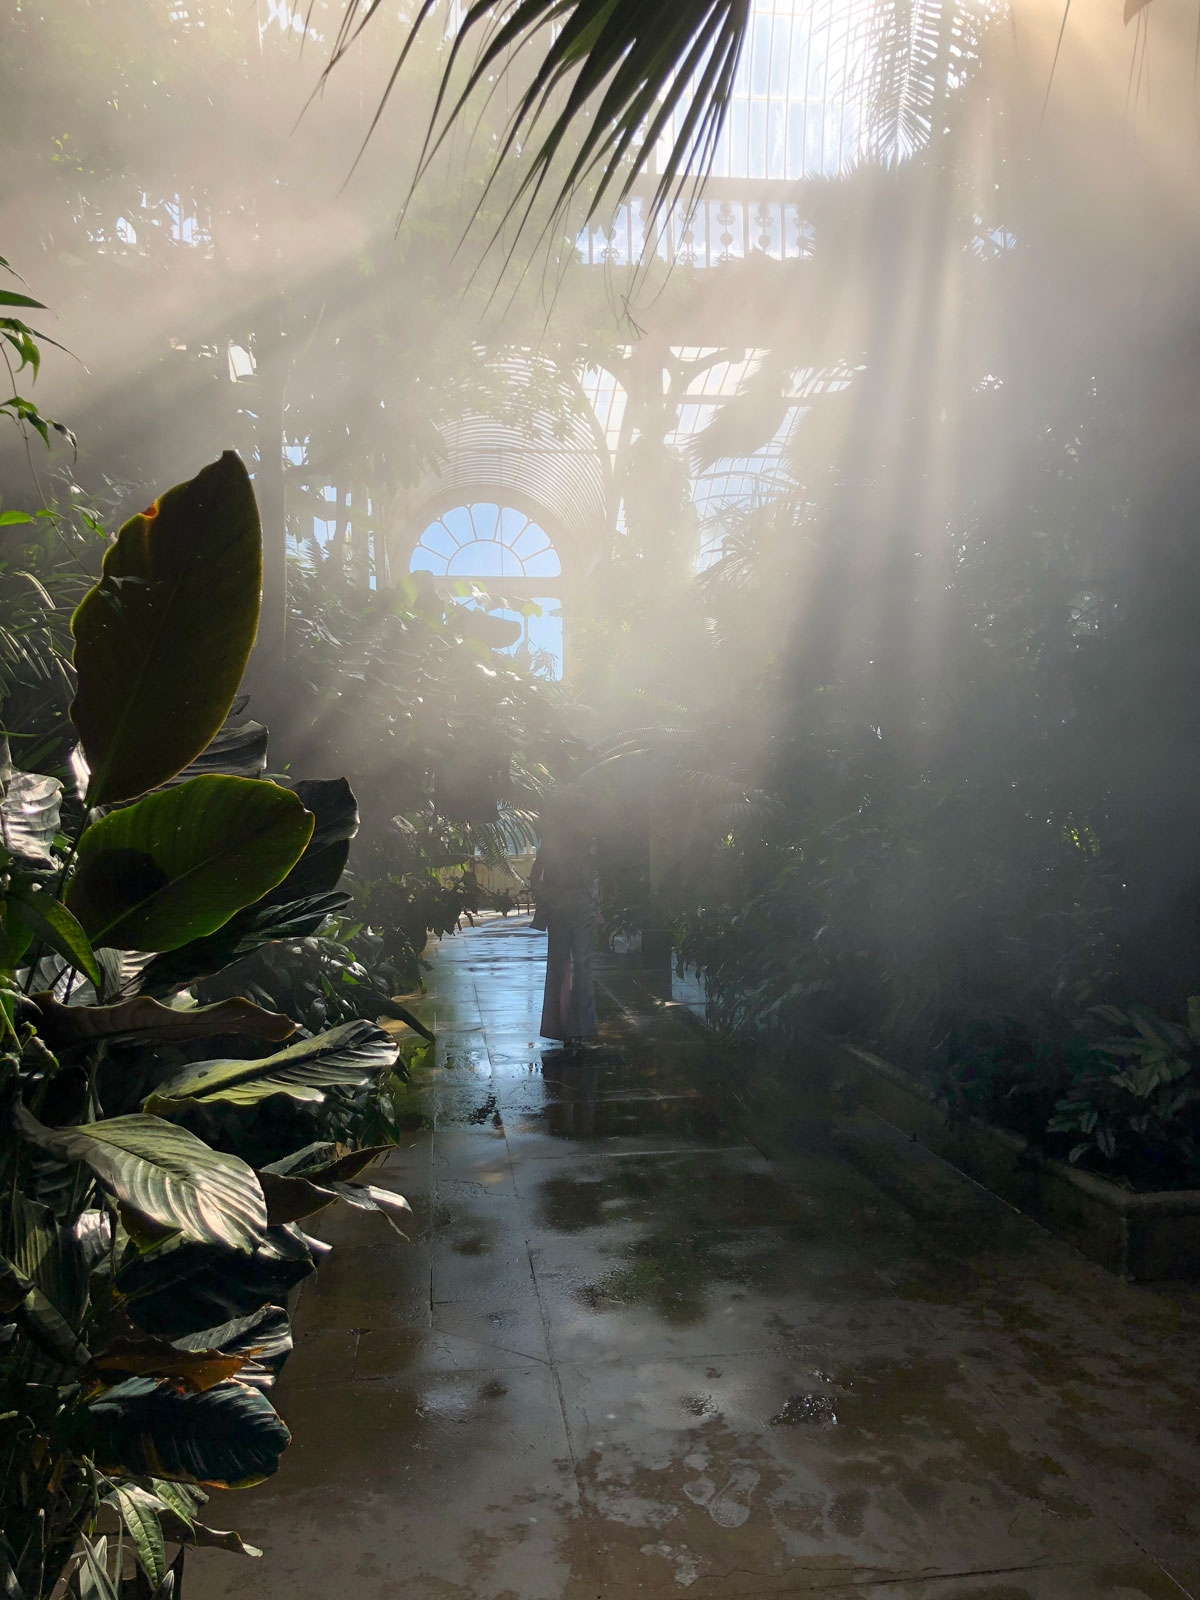 The sun shines through the glass ceiling onto dense plantations in Kew Gardens